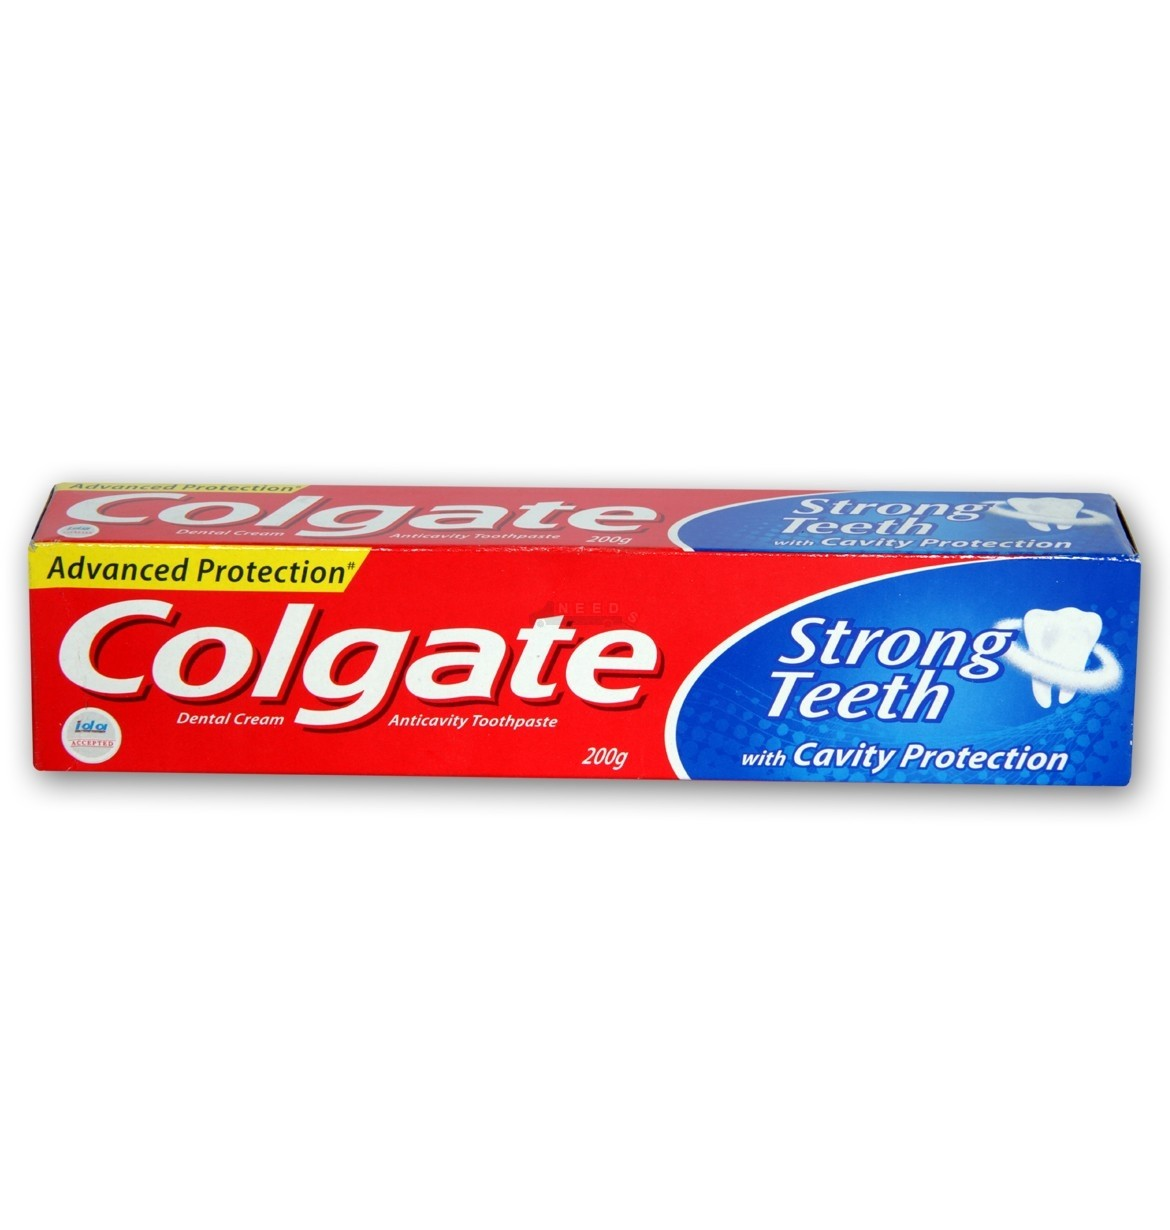 Colgate-Palmolive World of Care. Each day, the 38, employees of Colgate-Palmolive share a commitment to bringing you safe, effective products, as well as programs to .